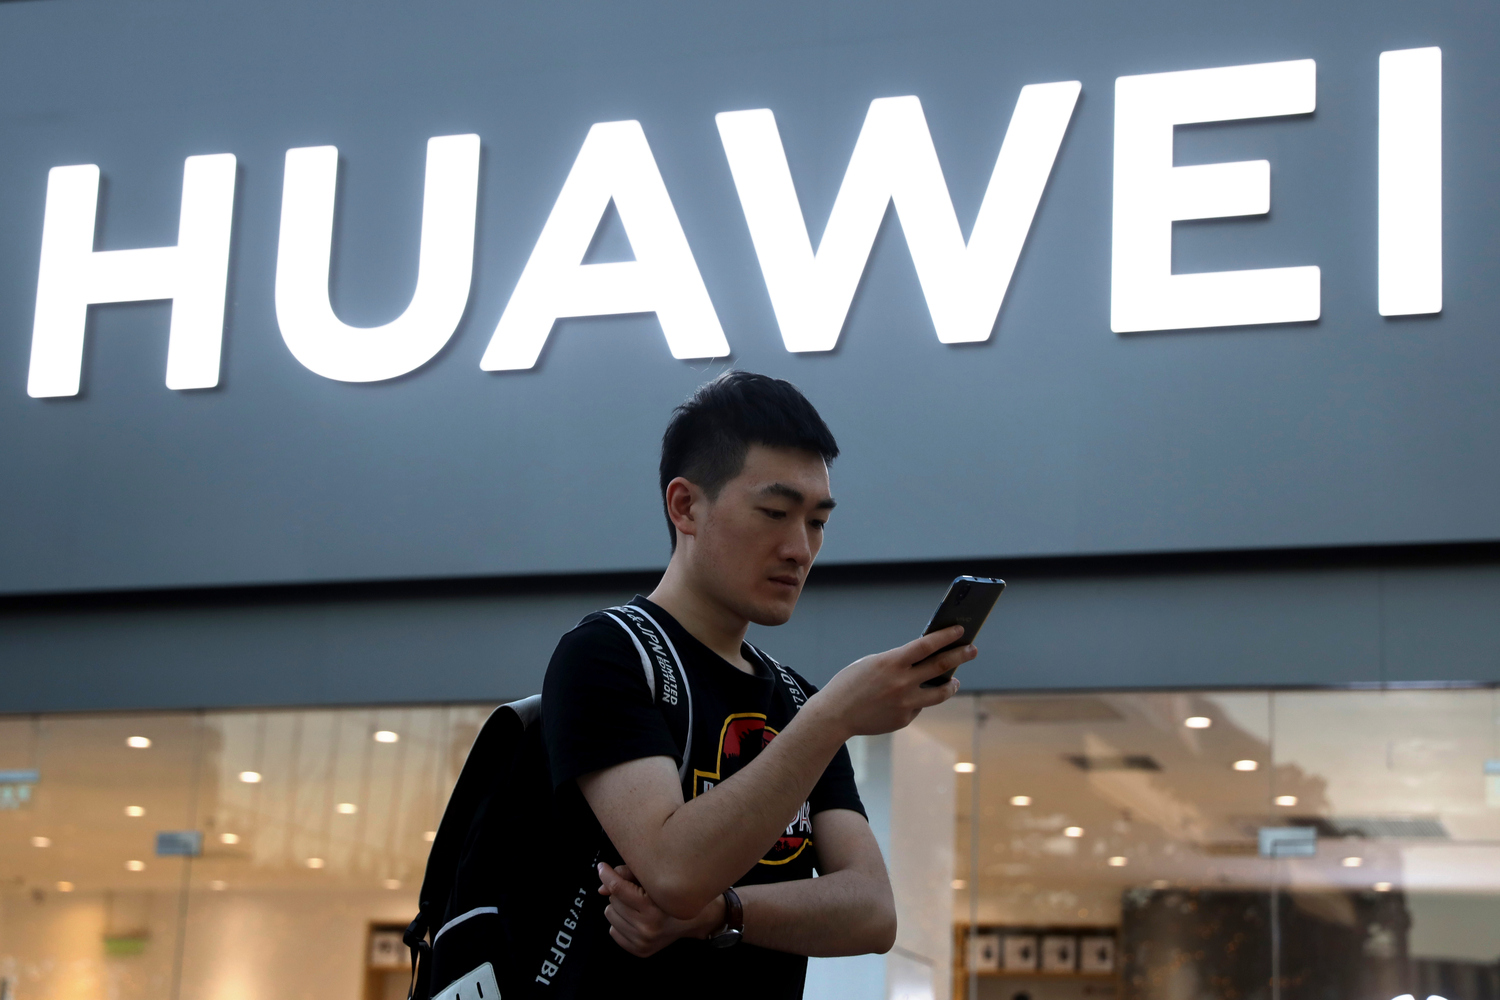 Huawei just got the ban reprieve it needs to release the Mate 30 Pro and Mate X